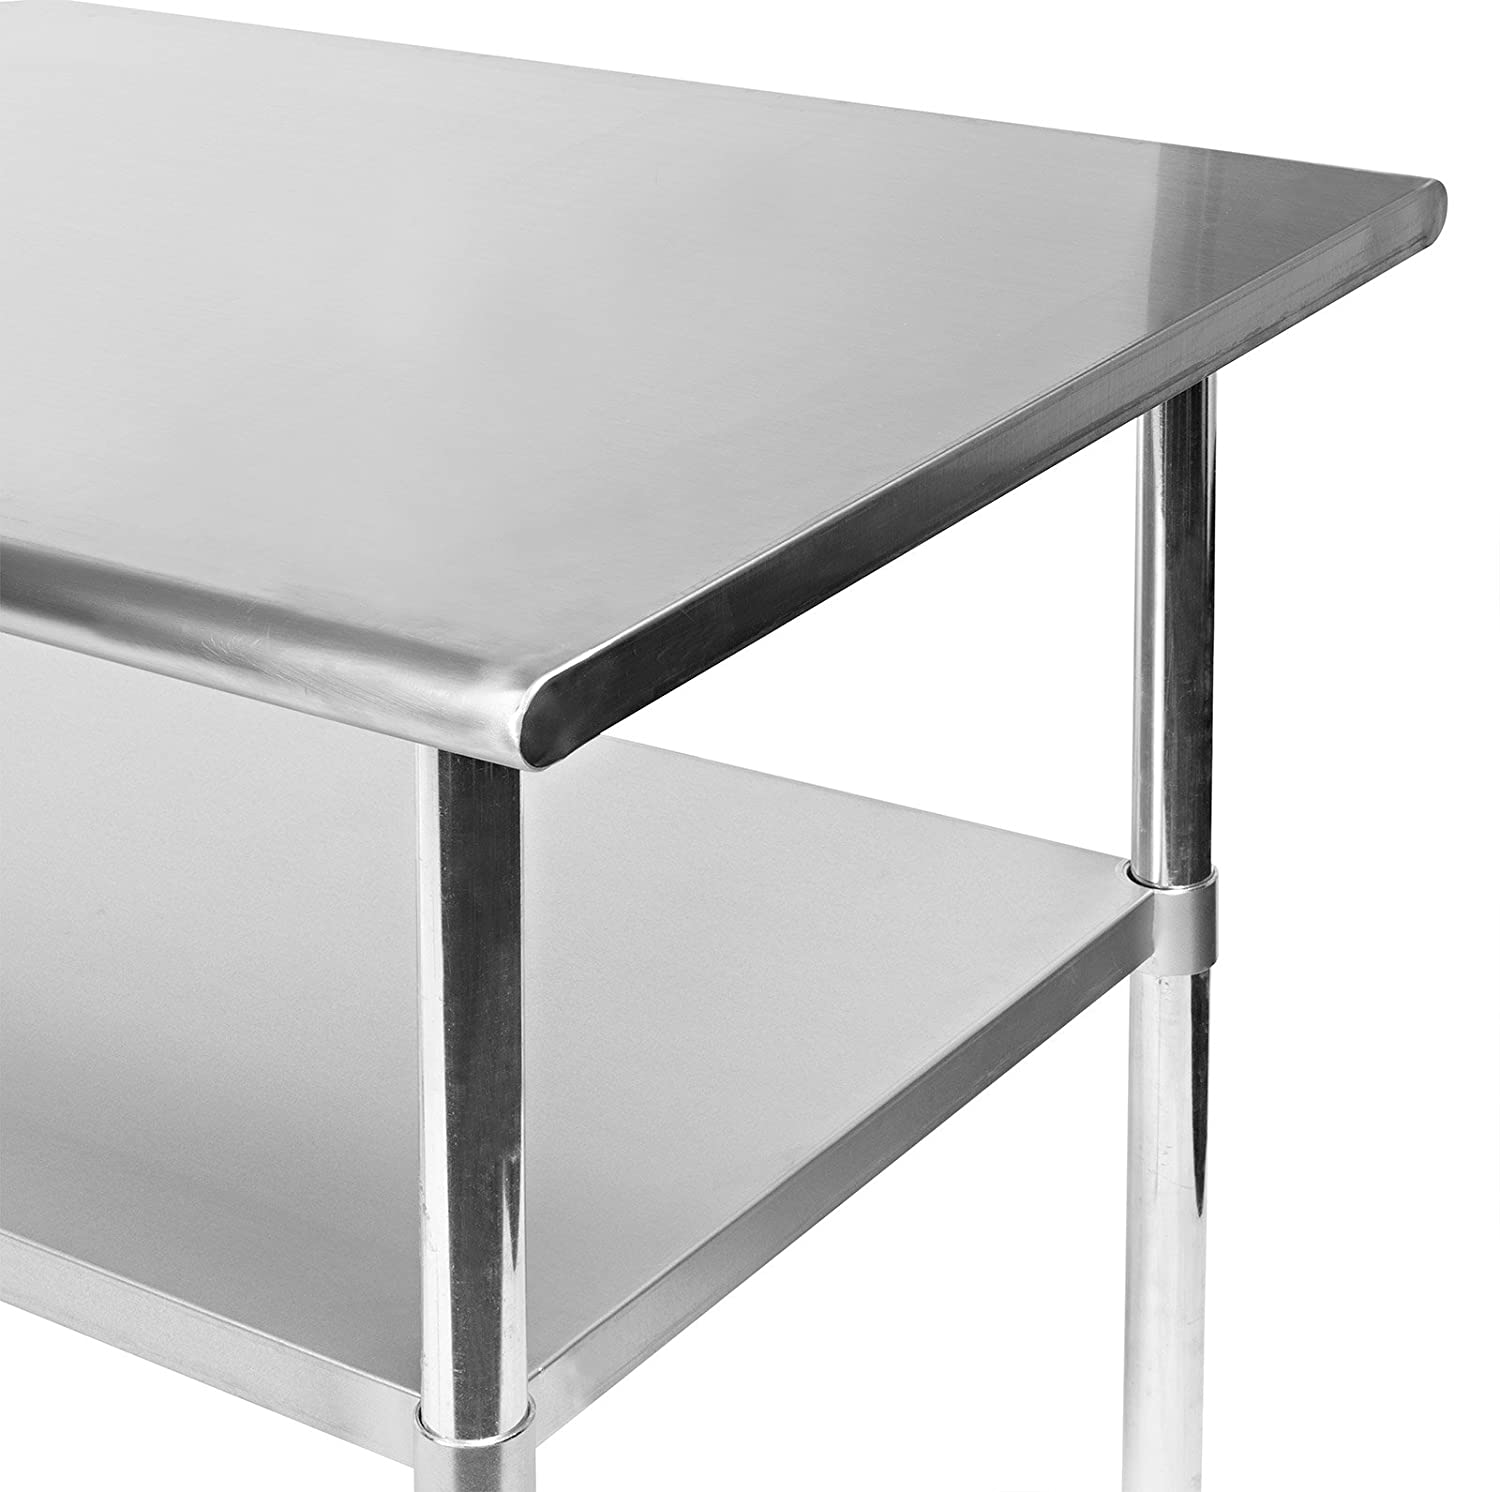 Amazon gridmann nsf stainless steel commercial kitchen prep amazon gridmann nsf stainless steel commercial kitchen prep work table 72 in x 30 in industrial scientific workwithnaturefo